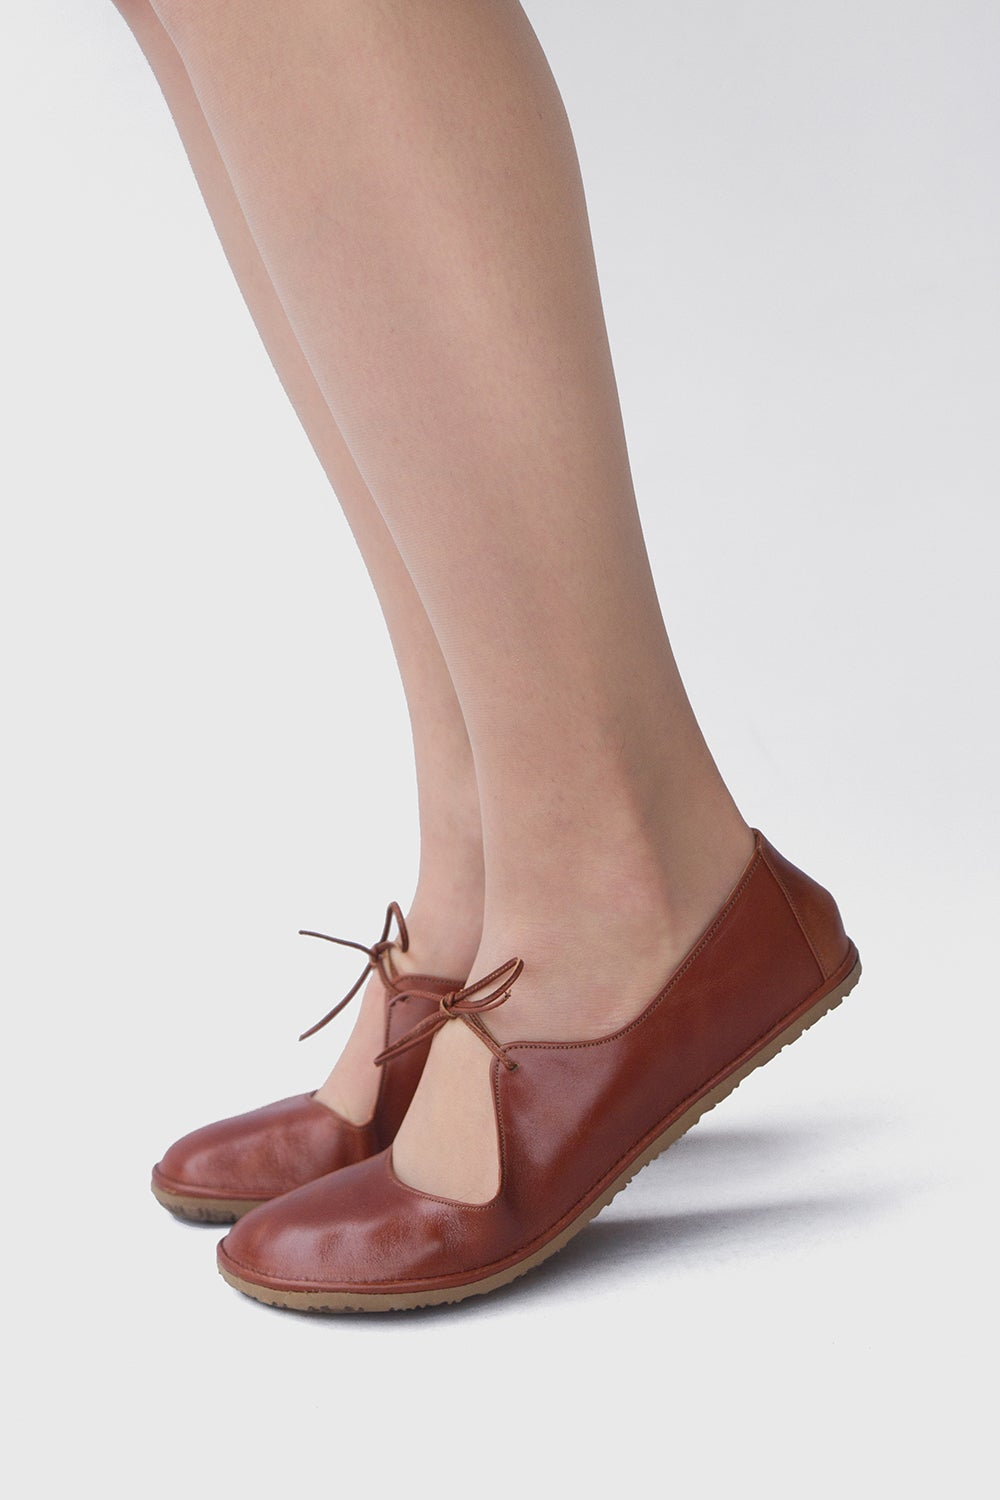 Image of Passion flats - in Lustrous Warm Brown